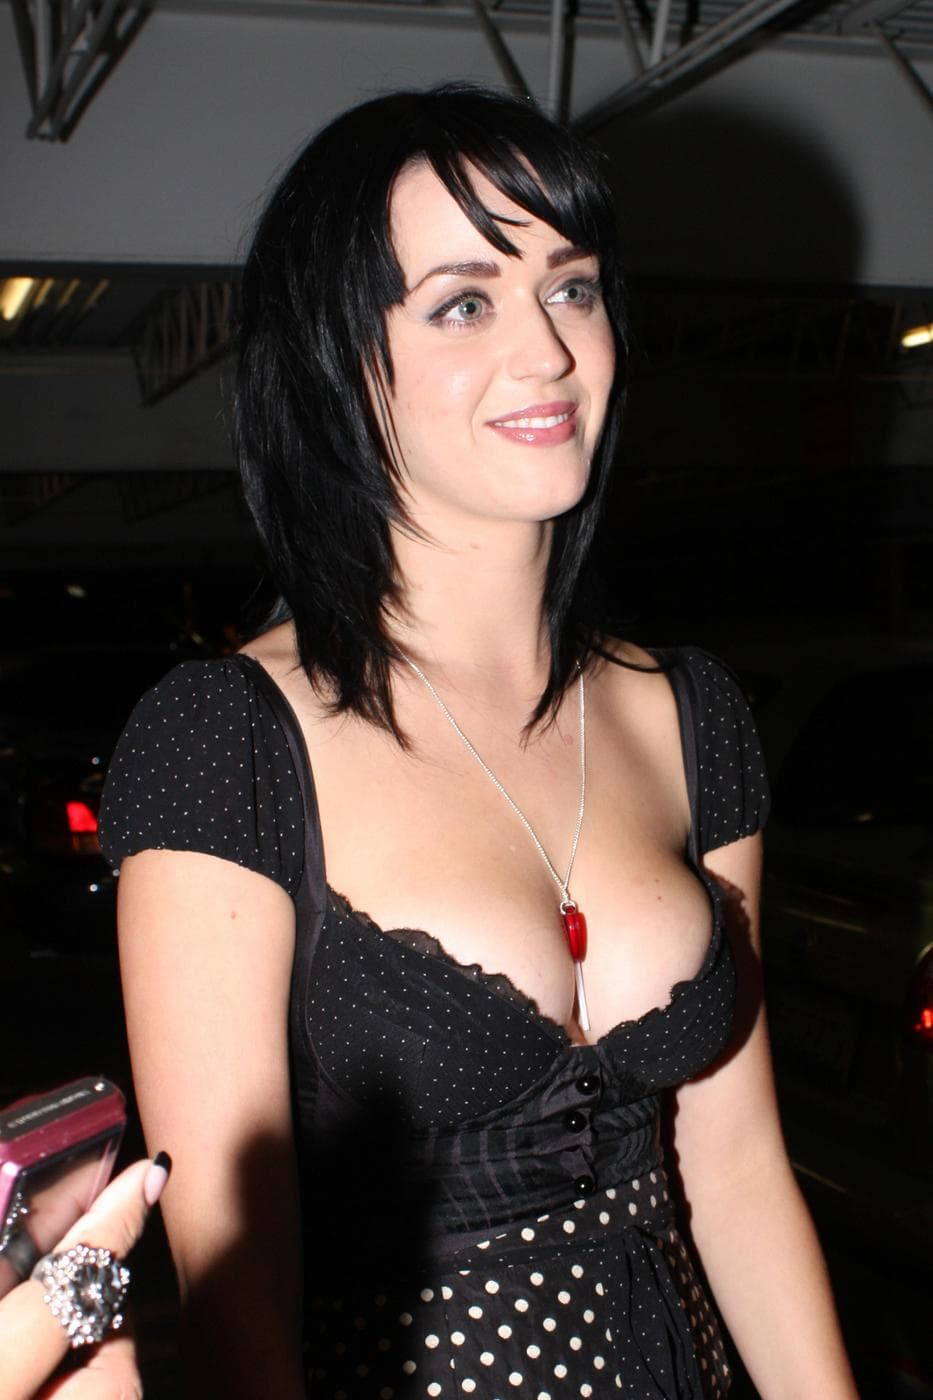 Katy Perry cleavages awesome (2)